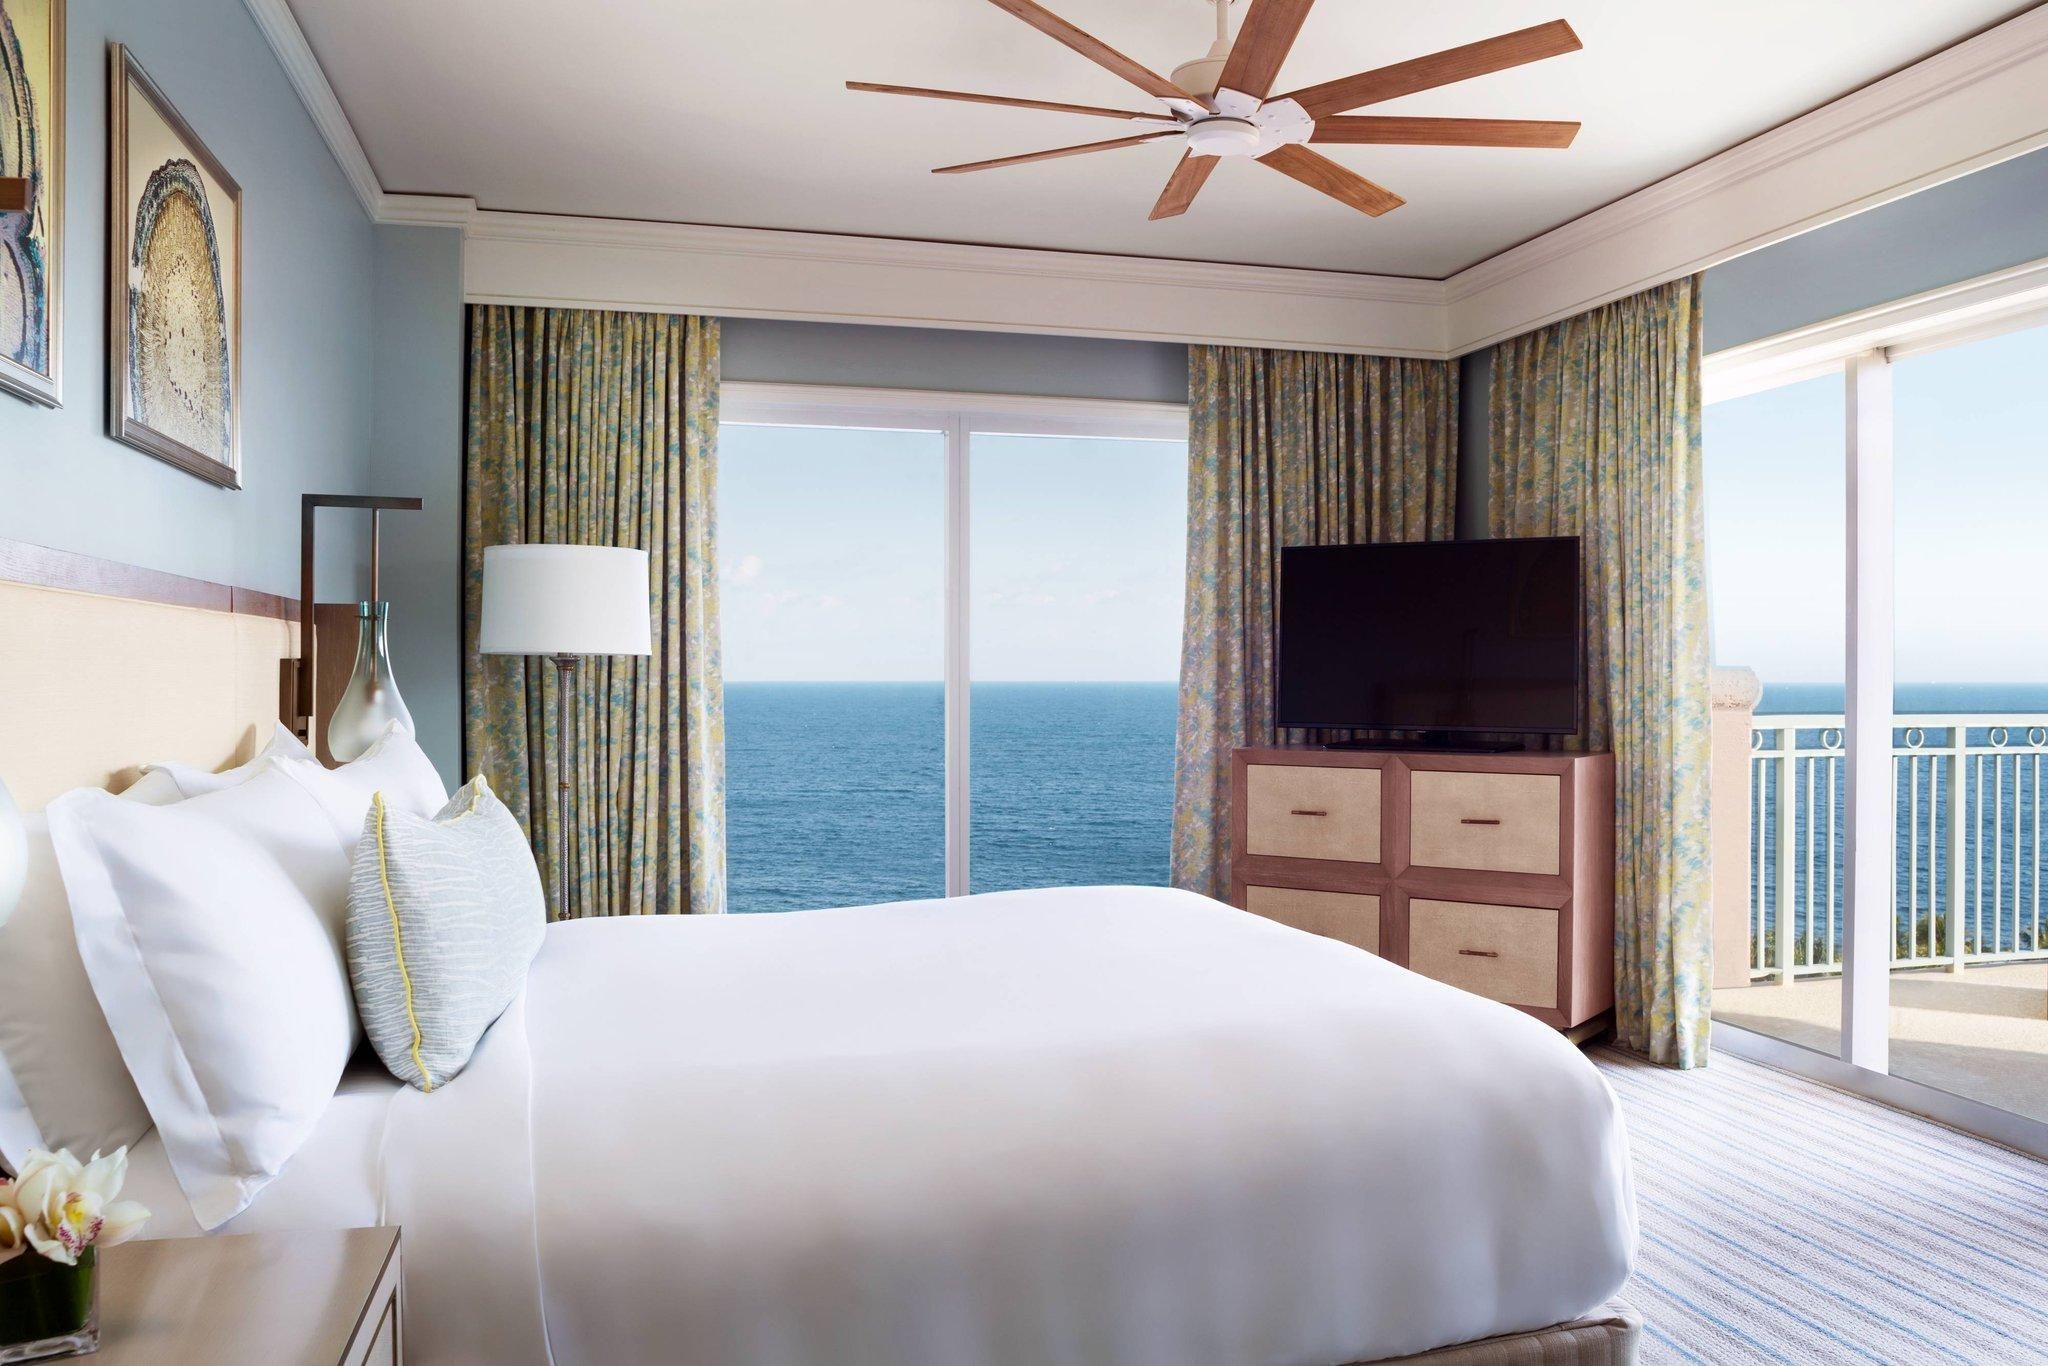 The Ritz-Carlton Suite, 2 Bedroom 2 room Suite, Oceanfront